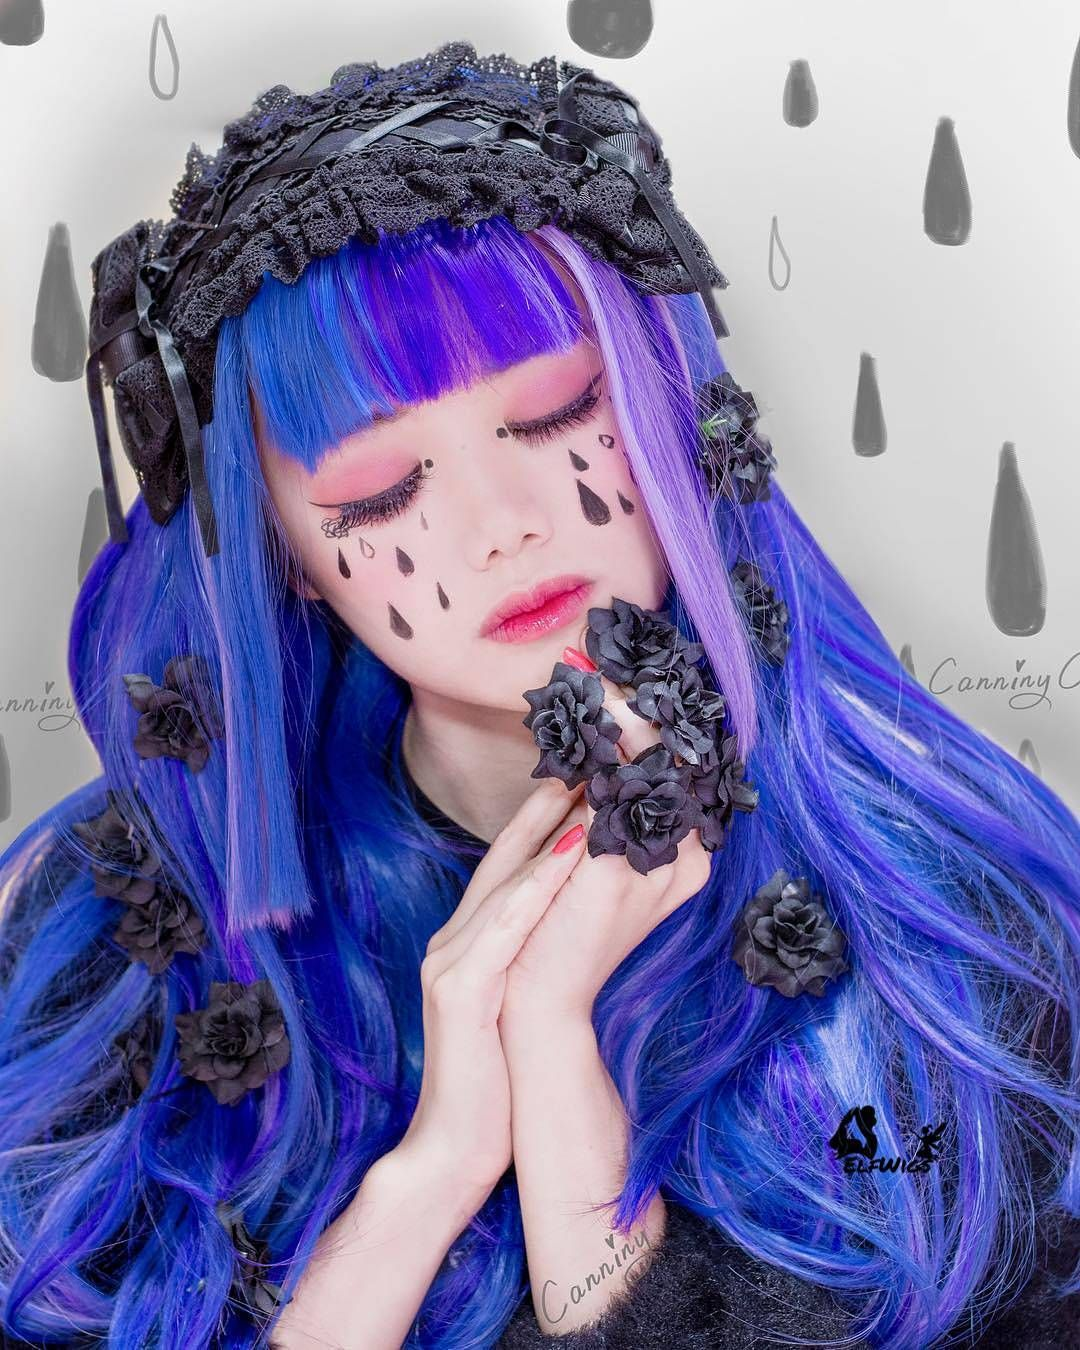 Gothic style length to chest strapHalf blue half purple synthetic Lace Front Wig-SD063  This is our sweet @canniny  Do you like it?  COUPON Code: ELFIG1101  Up to $25 discount  #hair #wig #elfwigs #cosplay #fashion #perfect